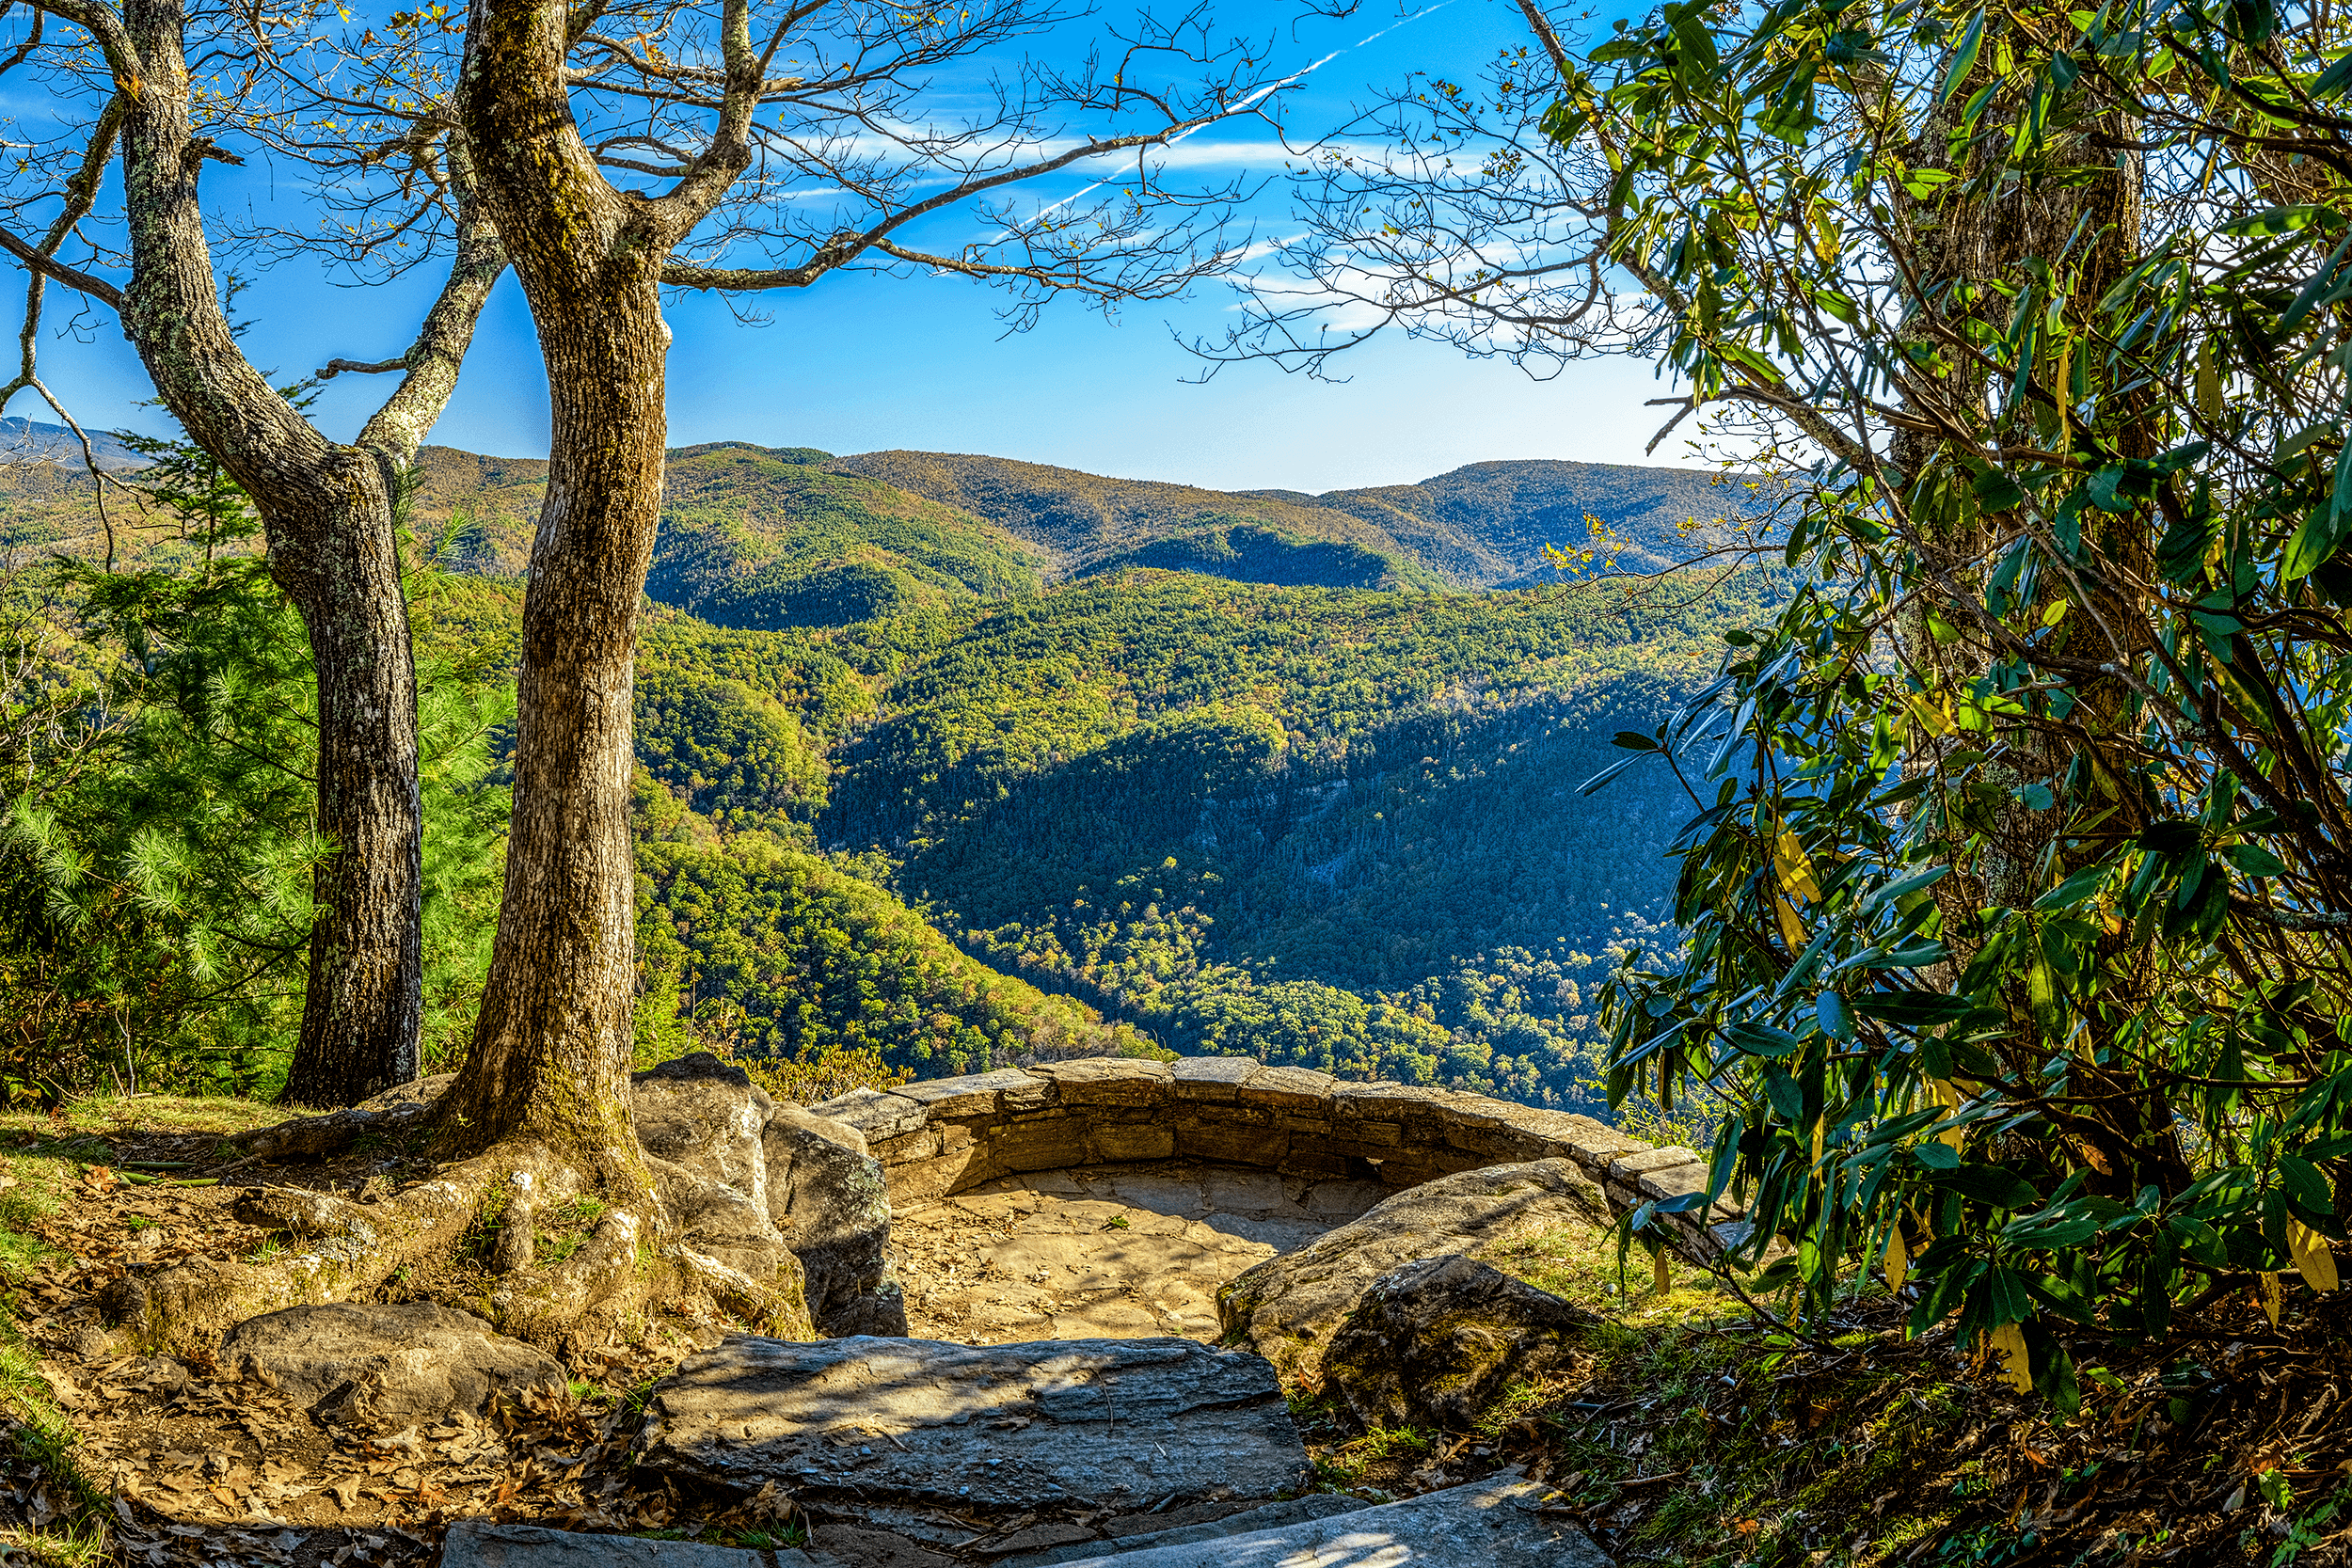 The  Chestoa View Overlook  has two viewing platforms, which you reach after a short hike. A rock-walled platform, which is located circa 0.2 miles (0.3 km) from the parking area, offers spectacular long-range views overlooking  Linville Gorge .